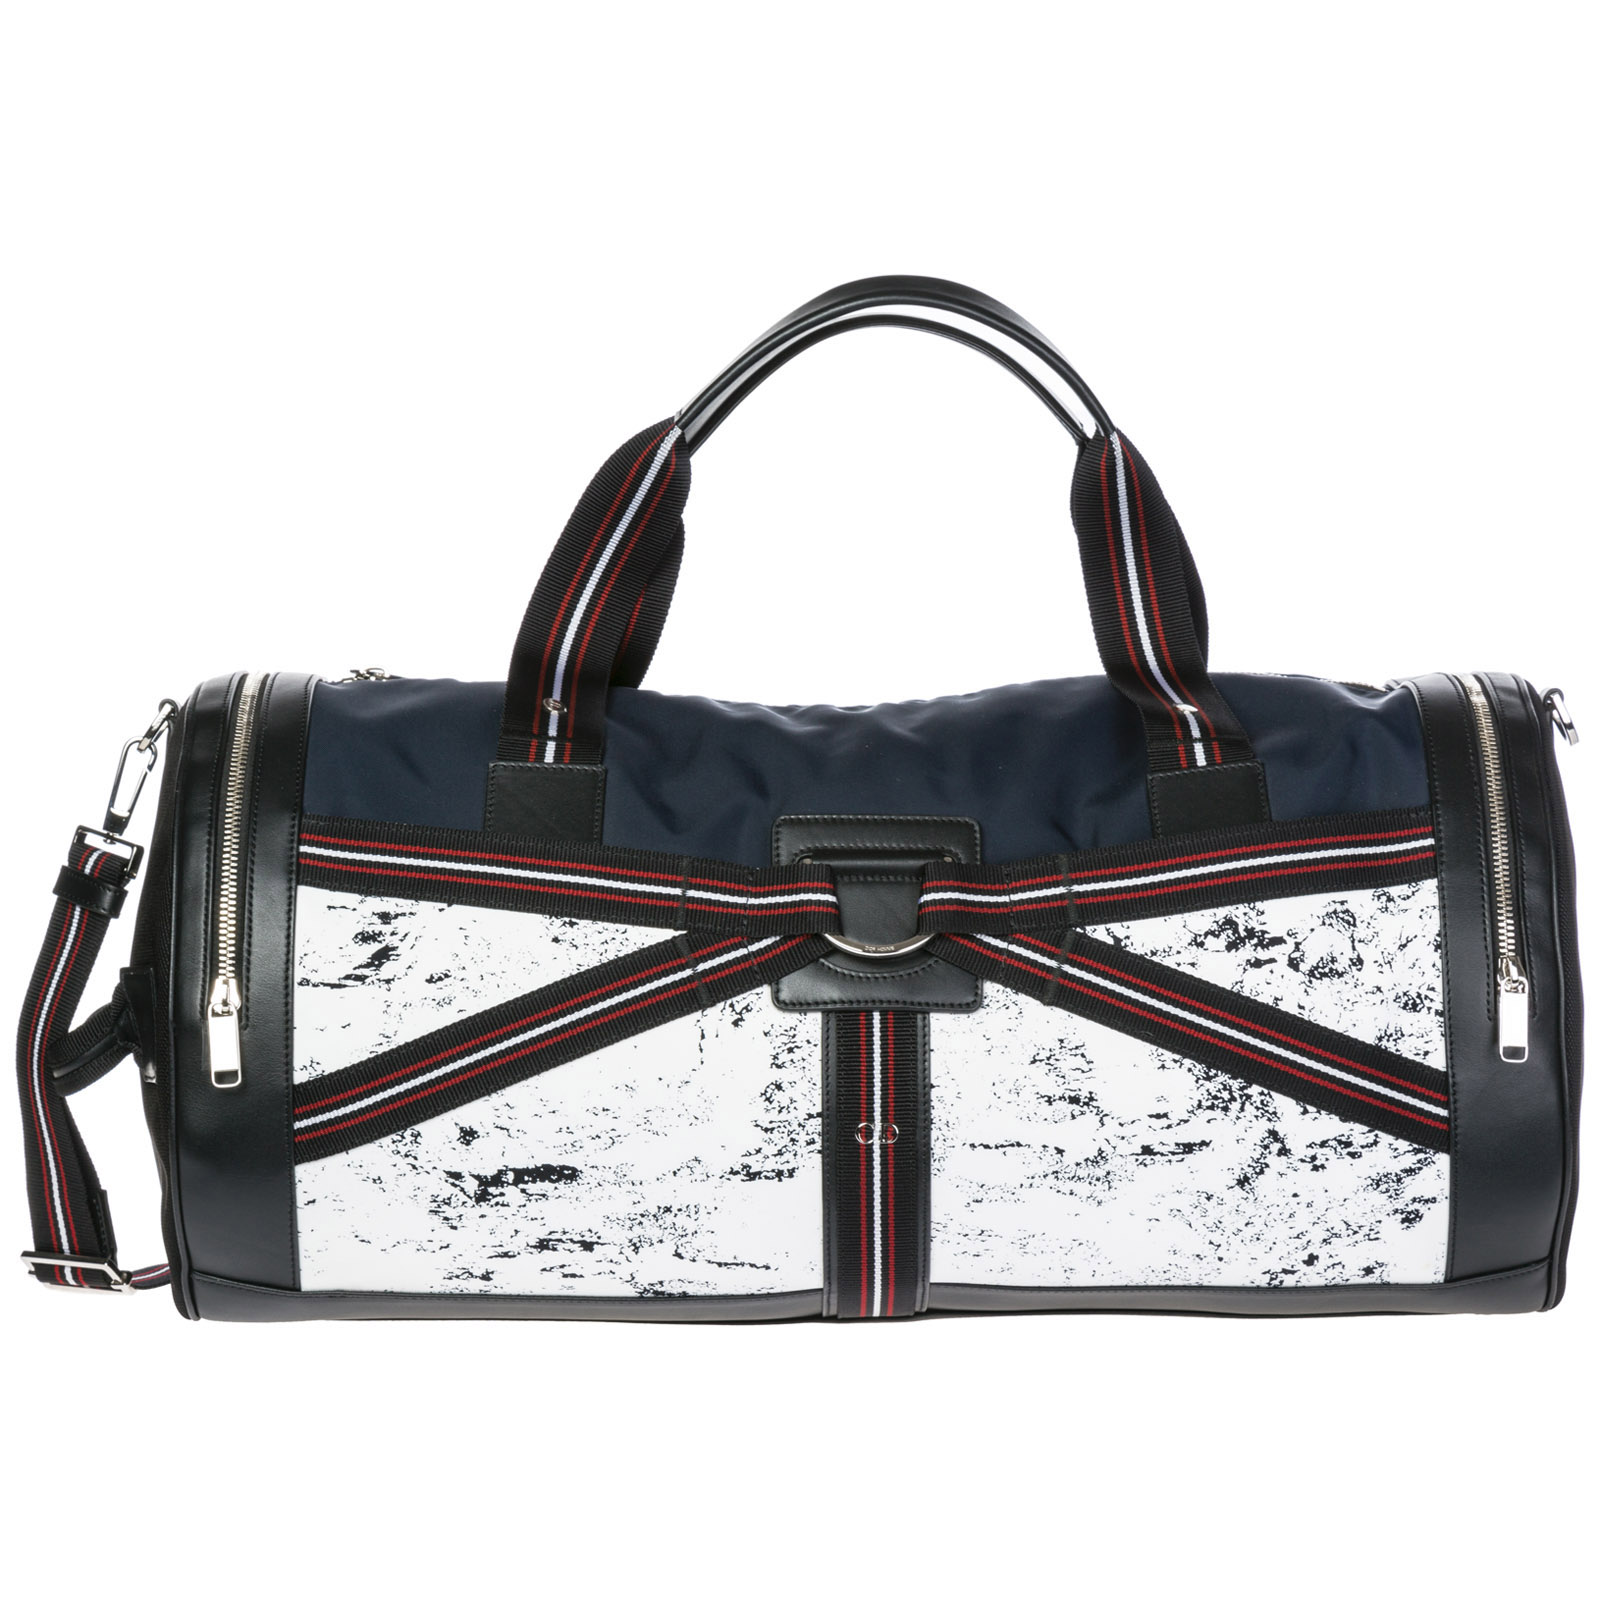 Dior Travel duffle weekend shoulder bag nylon 37905be7d0933